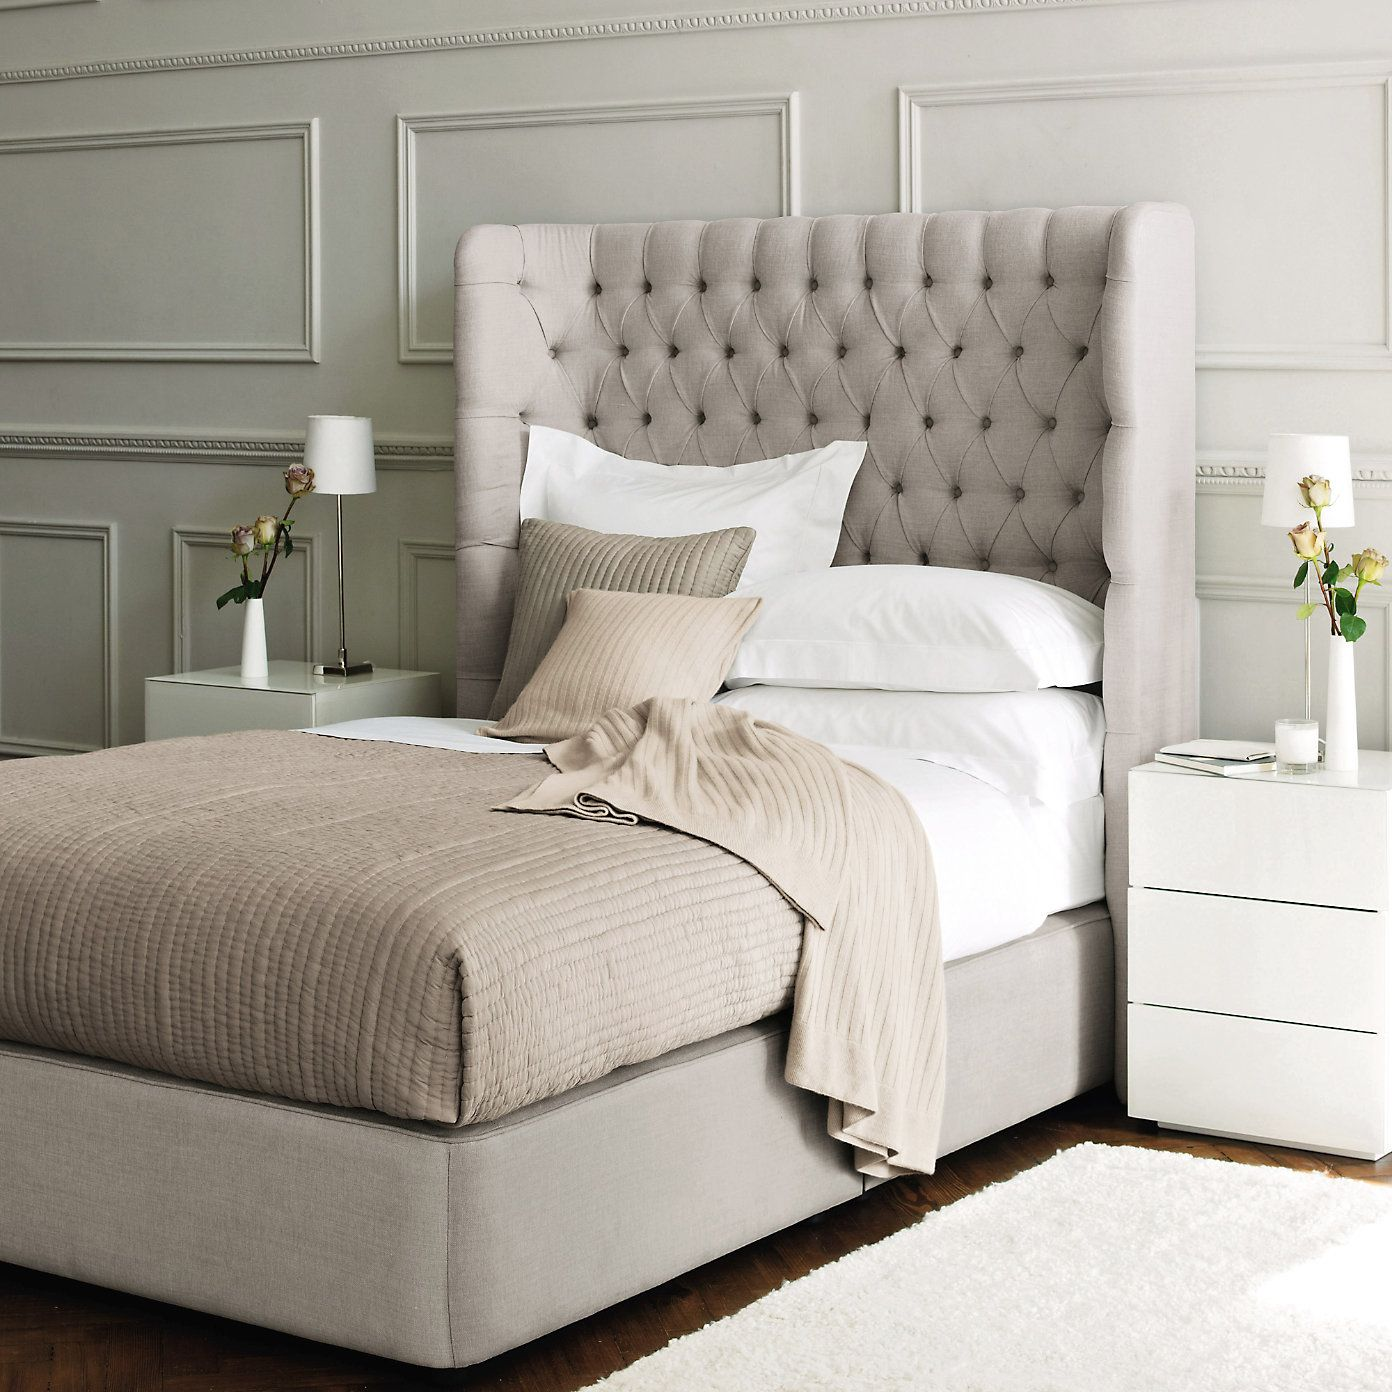 Dramatic Tufted Headboard Contemporary Side Tables And Wood Trim